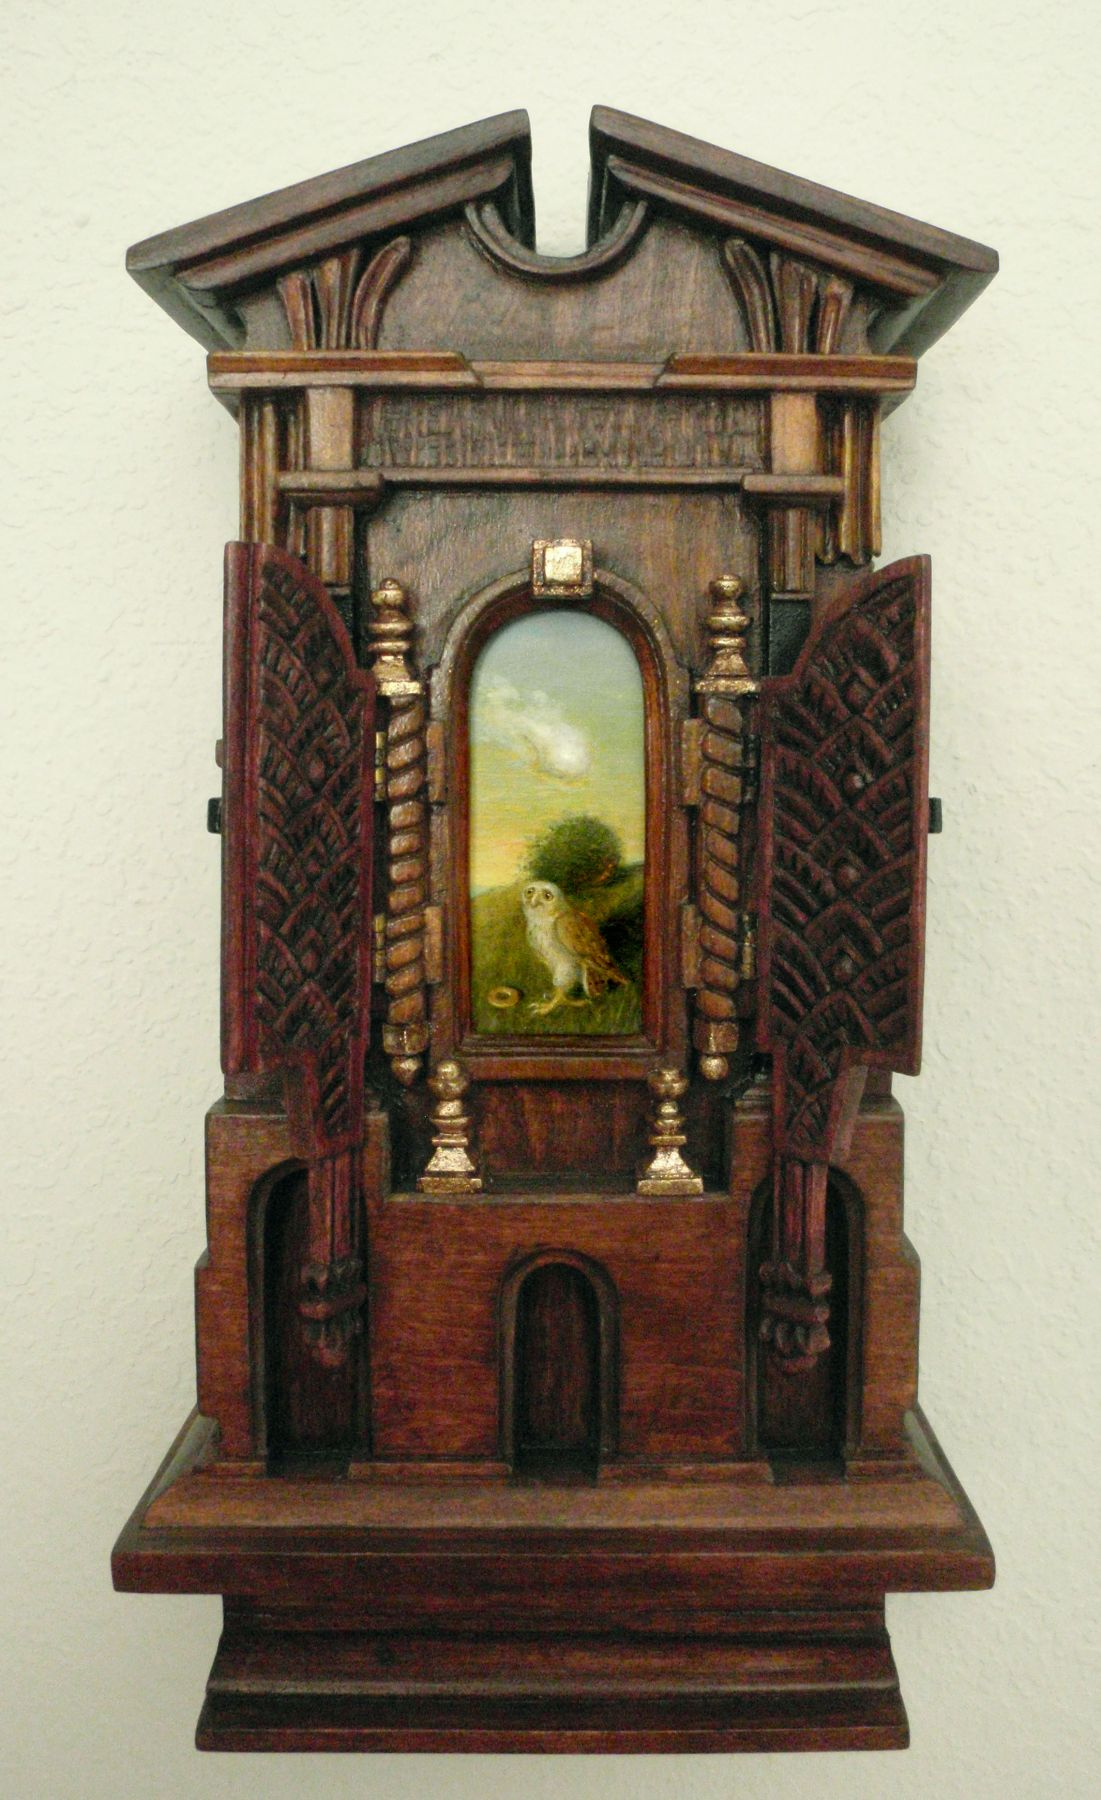 Holly Lane, Mindful Fledgling Rethinking Its Dietary Choices, 2010, acrylic and carved wood, 12 1/4 x 6 1/2 x 3 3/8 inches